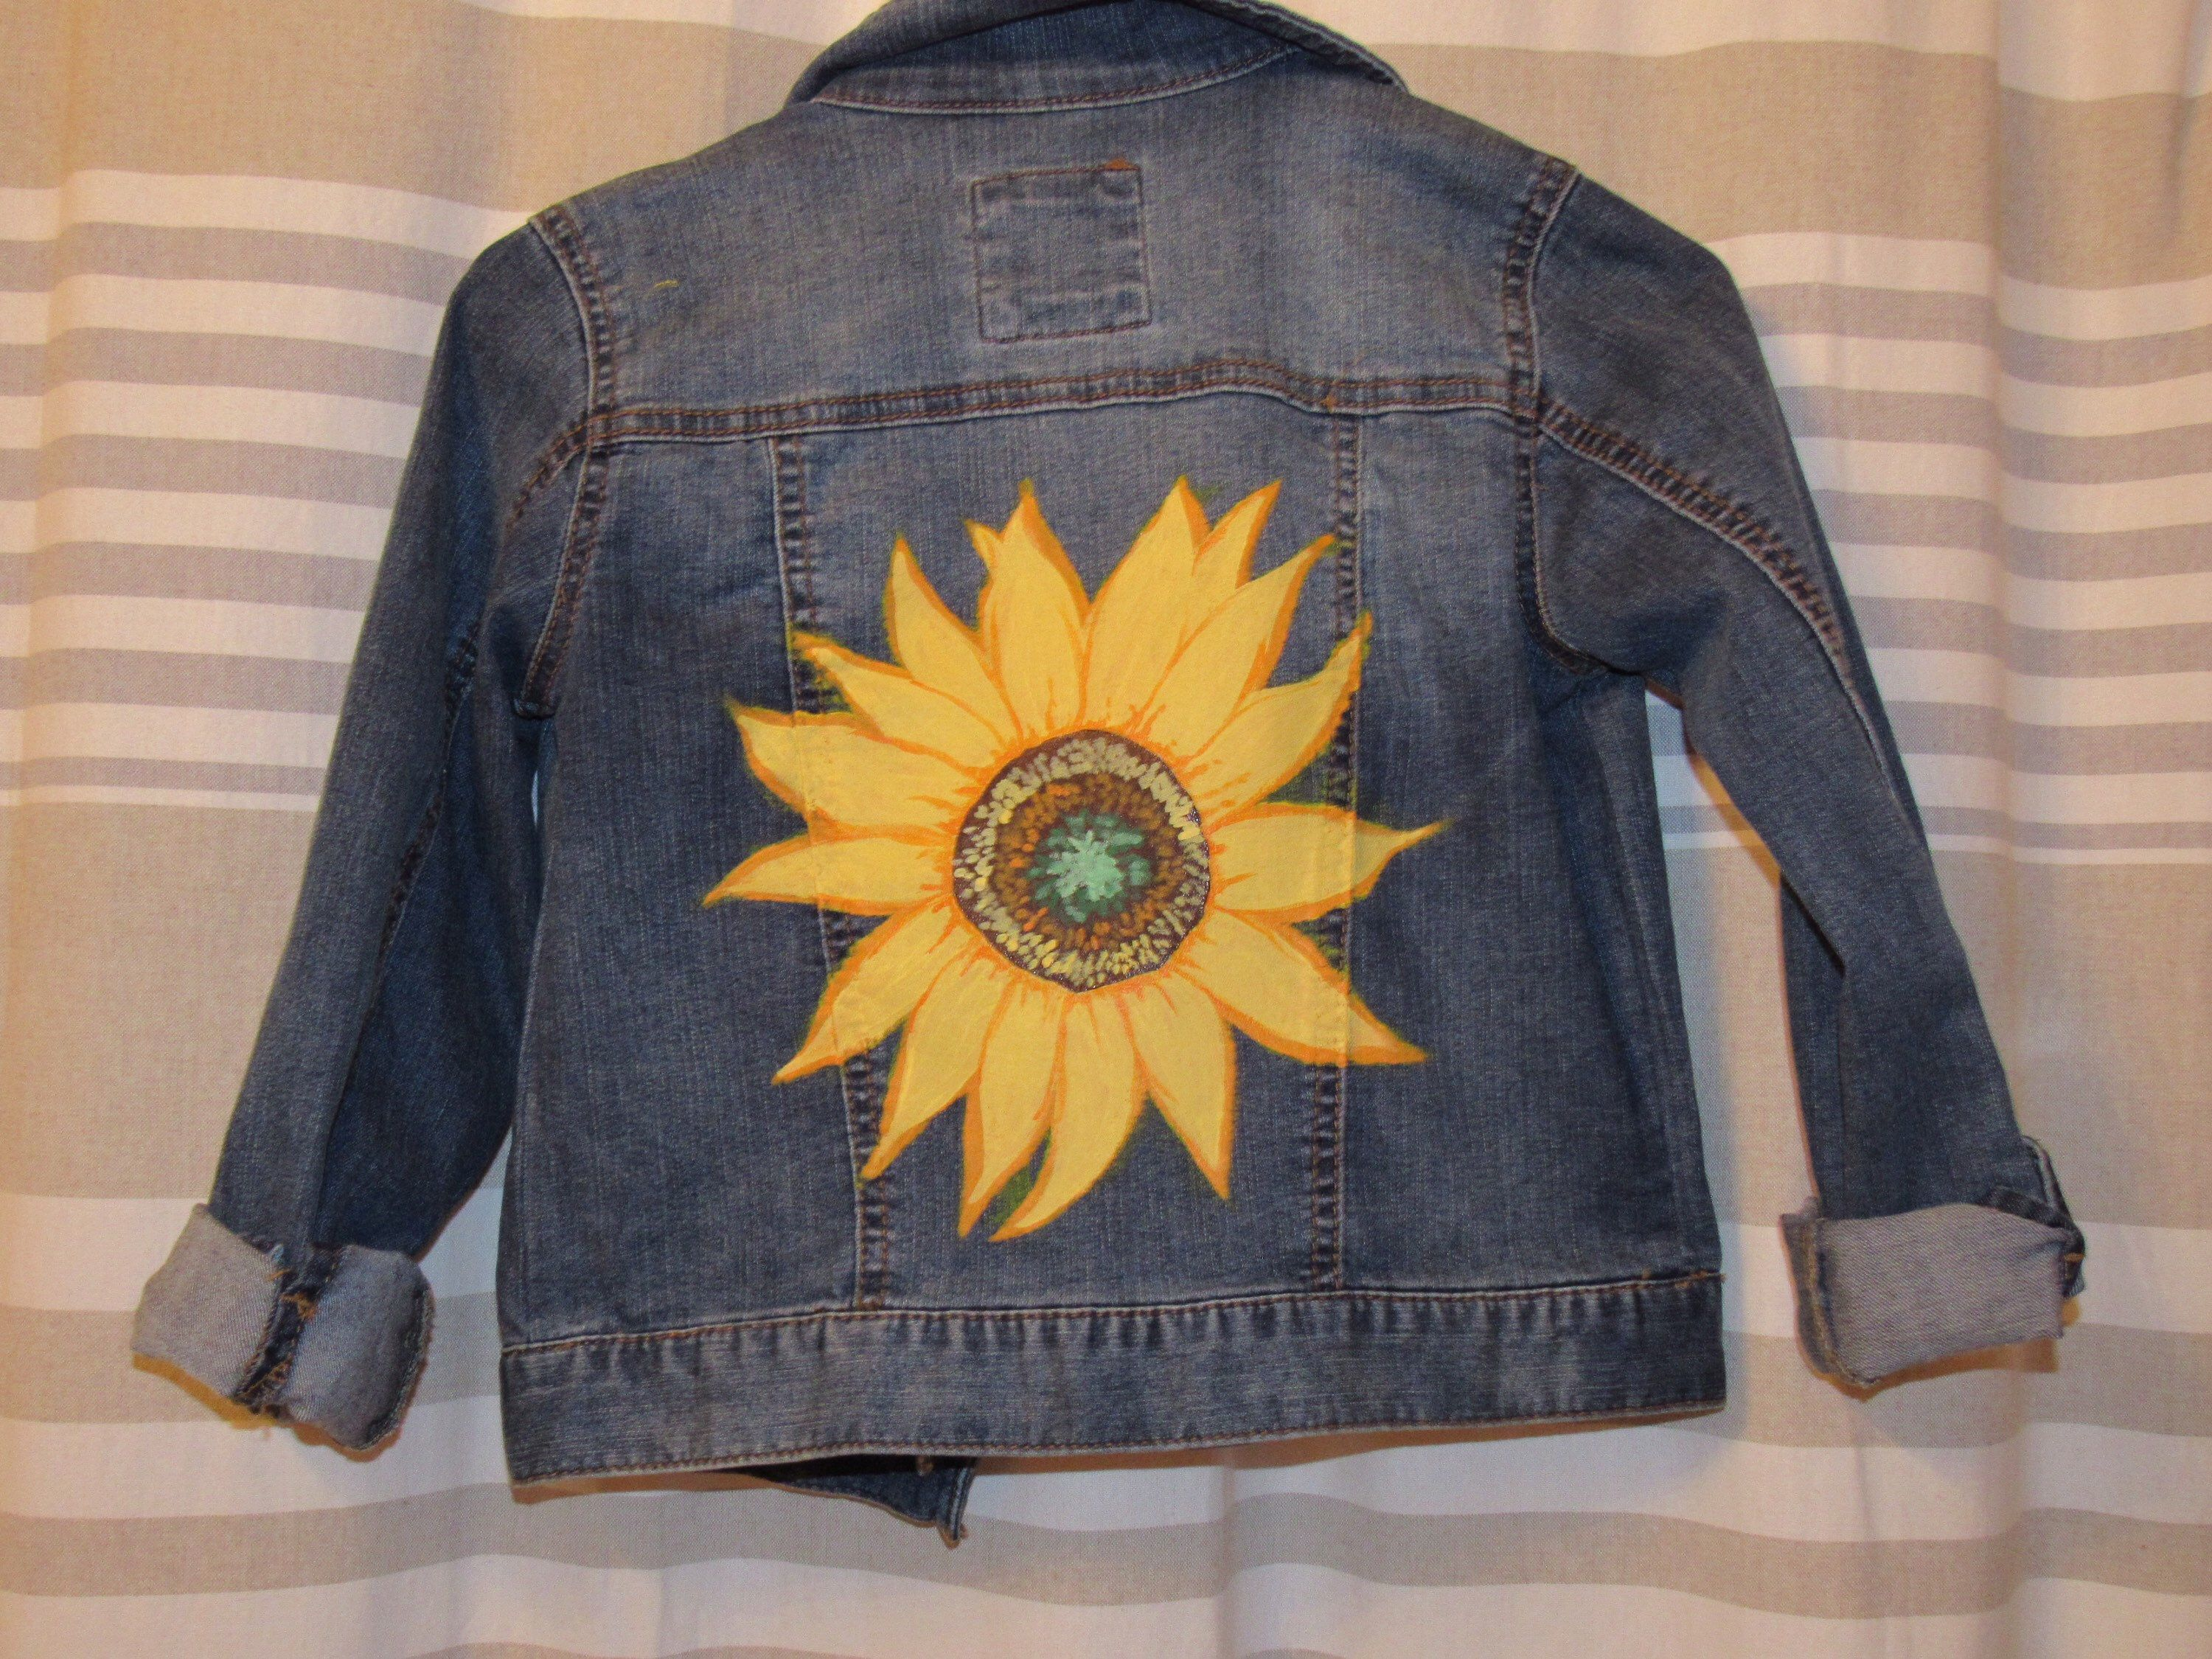 Excited To Share The Latest Addition To My Etsy Shop Sunflower Painted Jean Jacket Art Painting Yellow Landscap Painted Jeans Painted Denim Jacket Design [ 2250 x 3000 Pixel ]